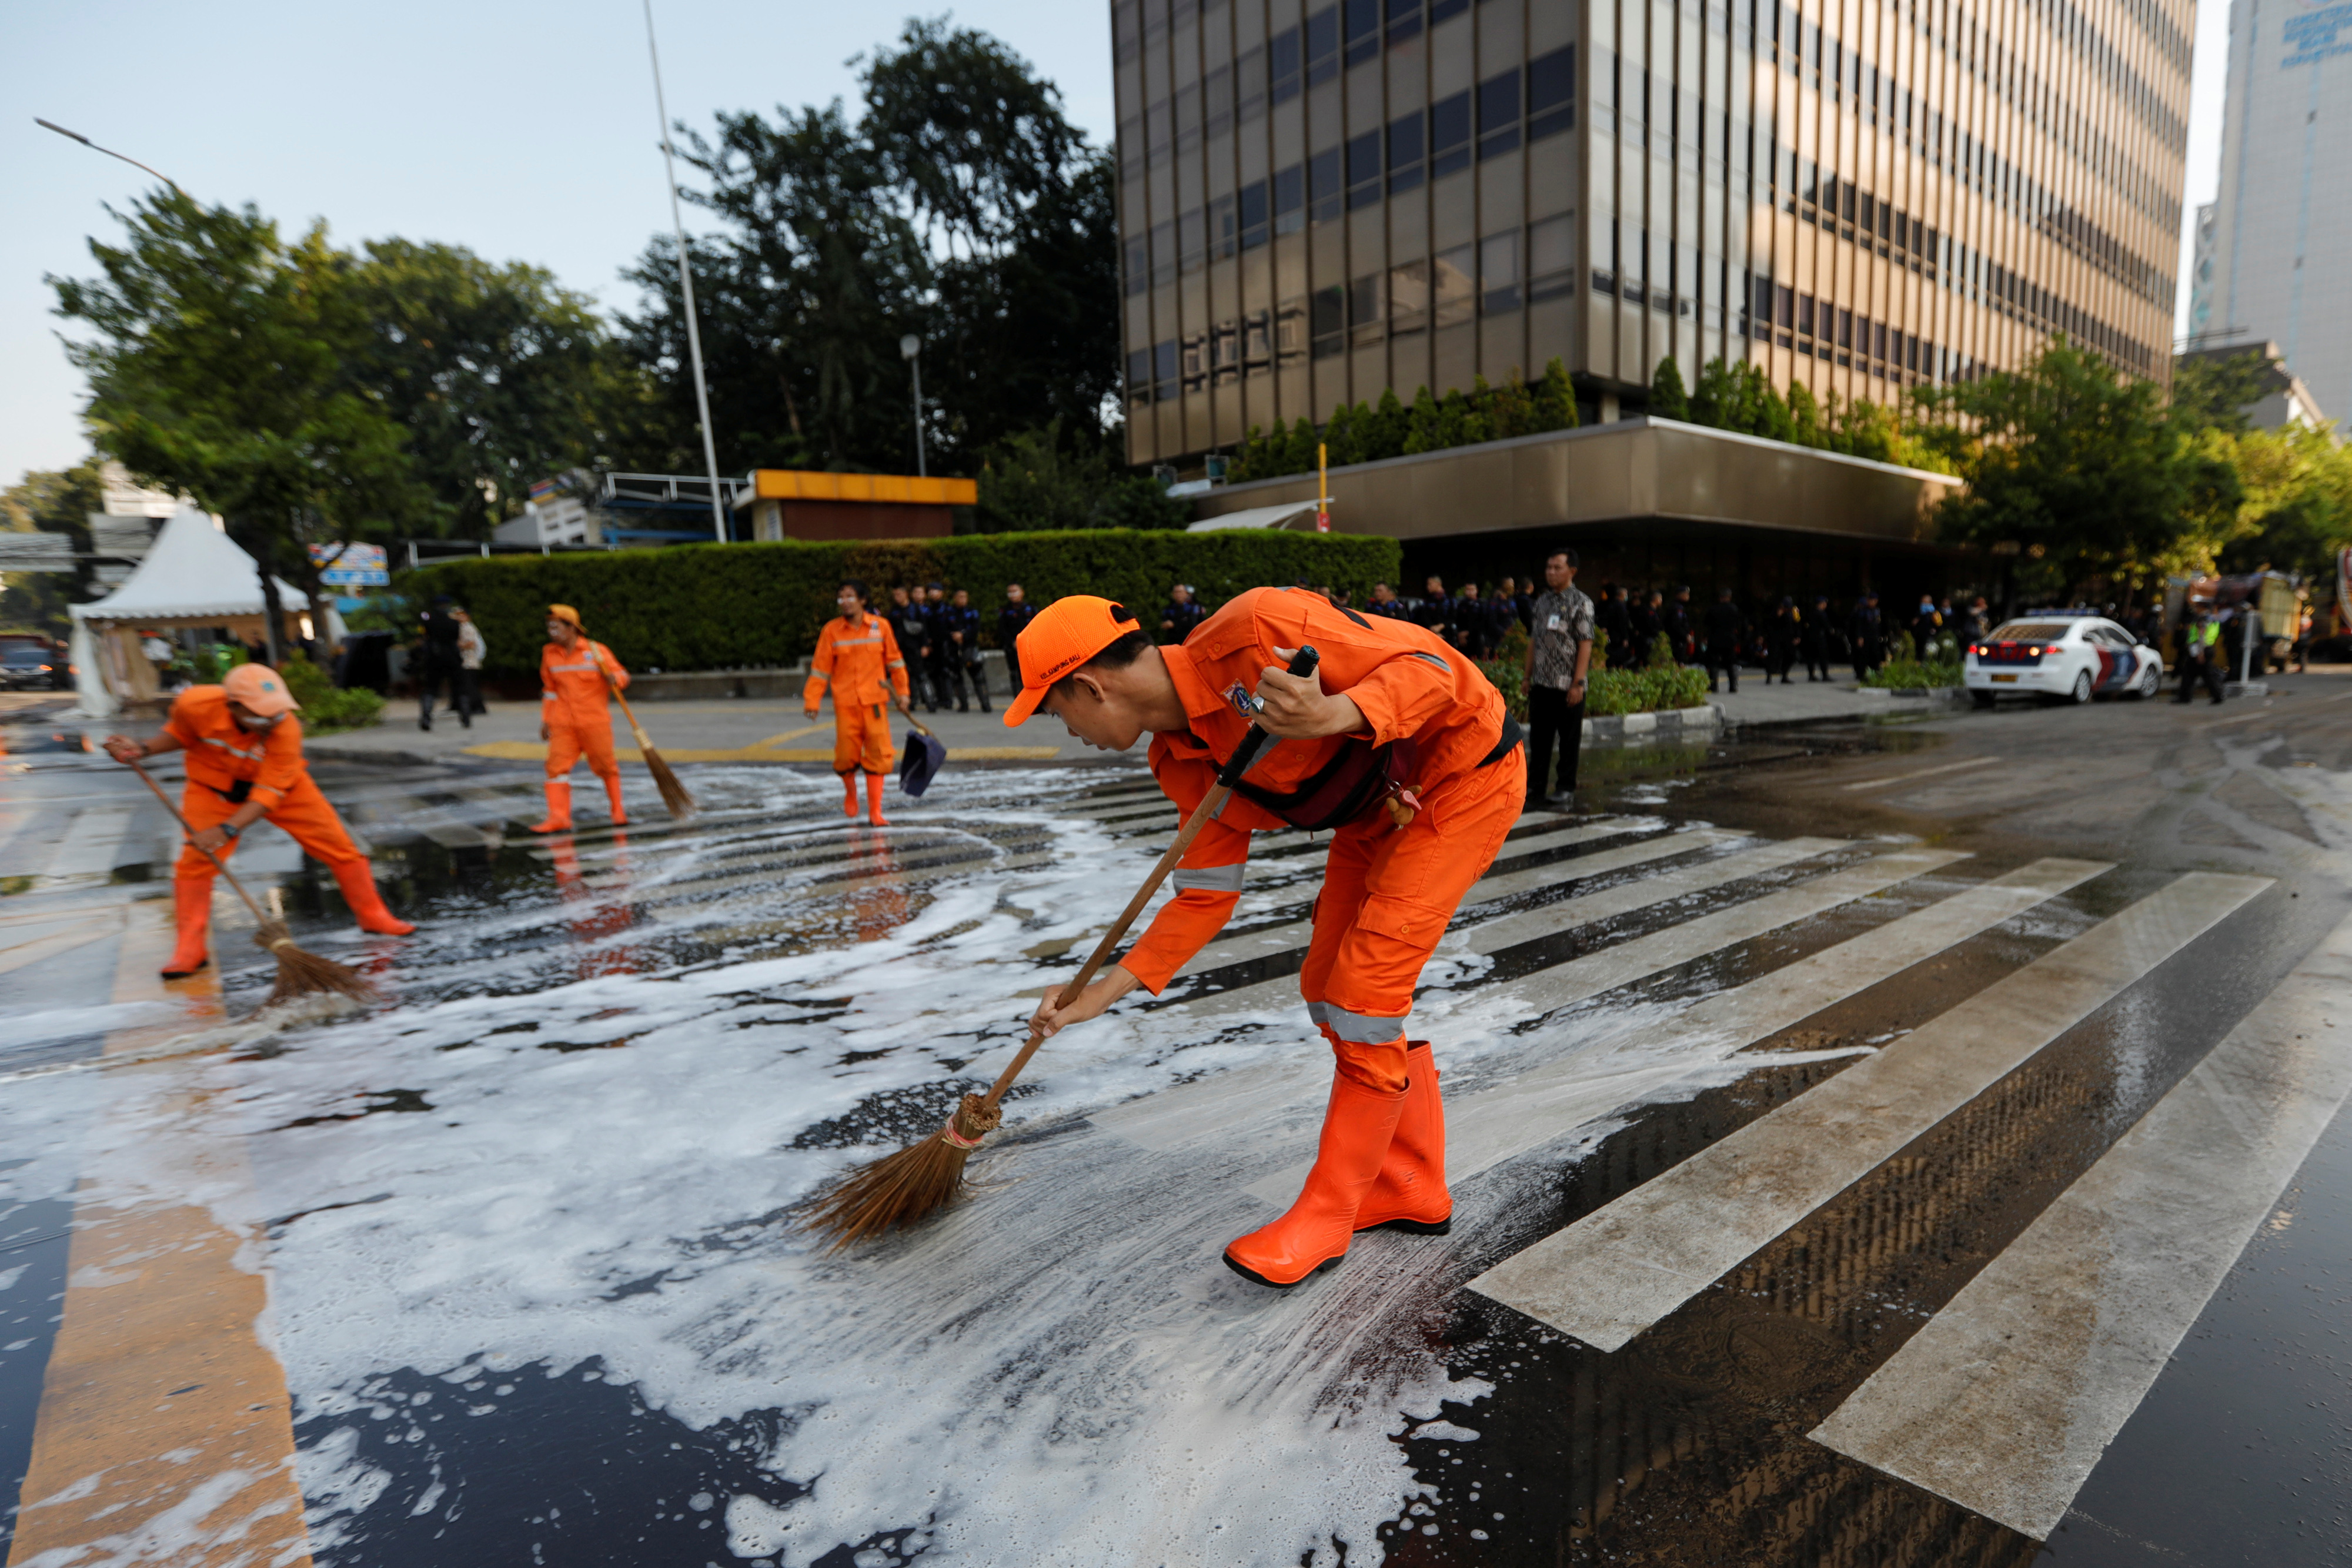 Workers clean the road after a riot outside Indonesia's Election Supervisory Agency headquarters following the announcement of last month's presidential election results in Jakarta, Indonesia, May 23, 2019.